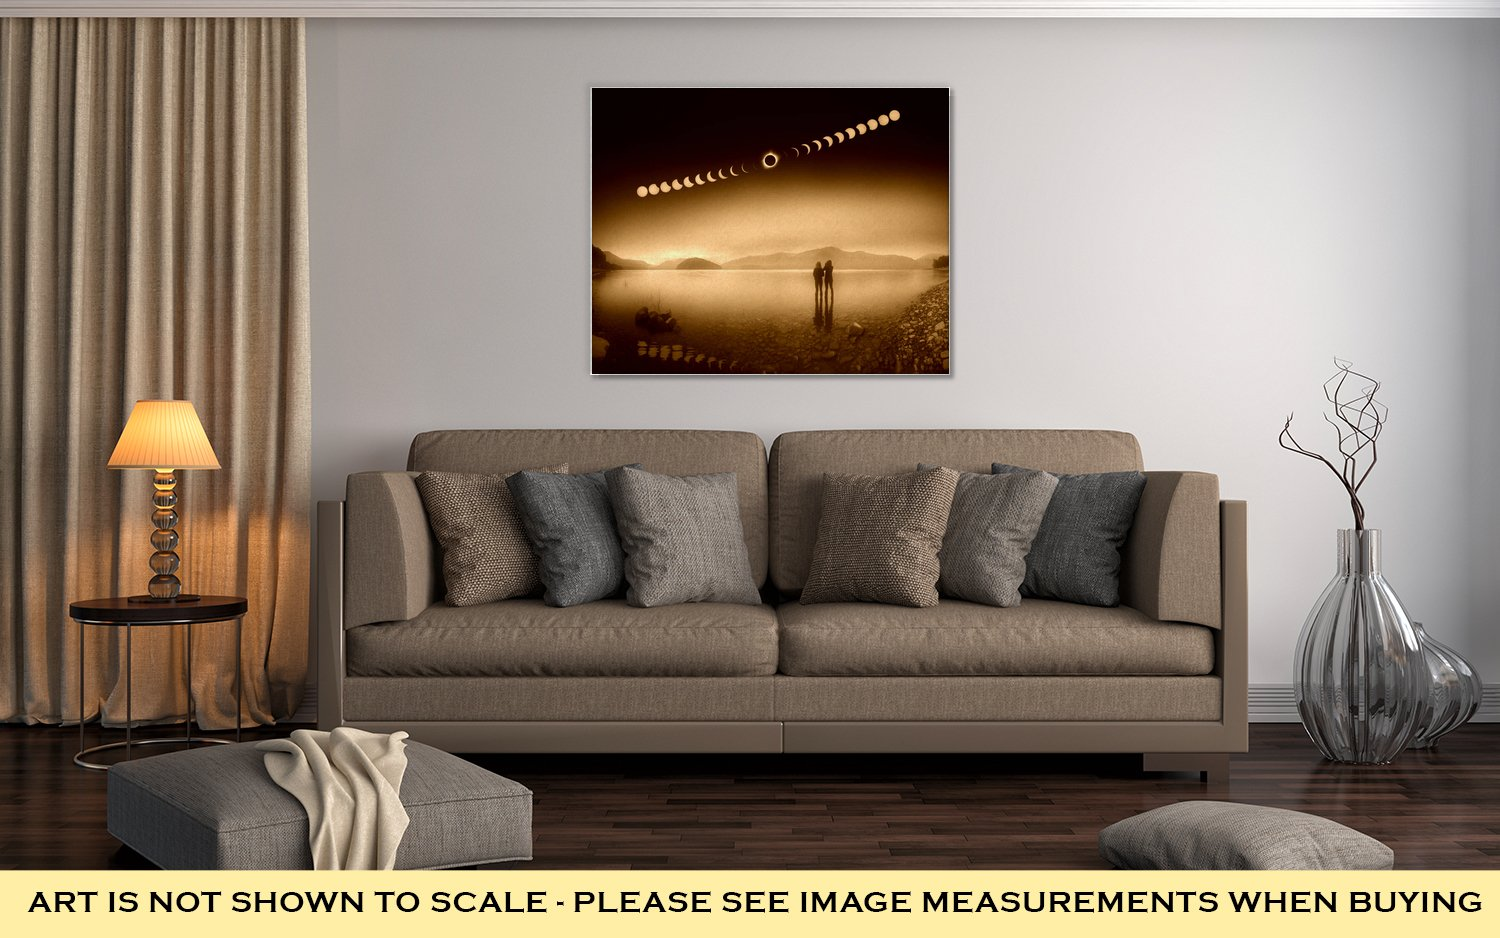 Ashley Canvas Woman and Girl Standing in Lake Watching Solar Eclipse, Wall Art Home Decor, Ready to Hang, Sepia, 16x20, AG6389623